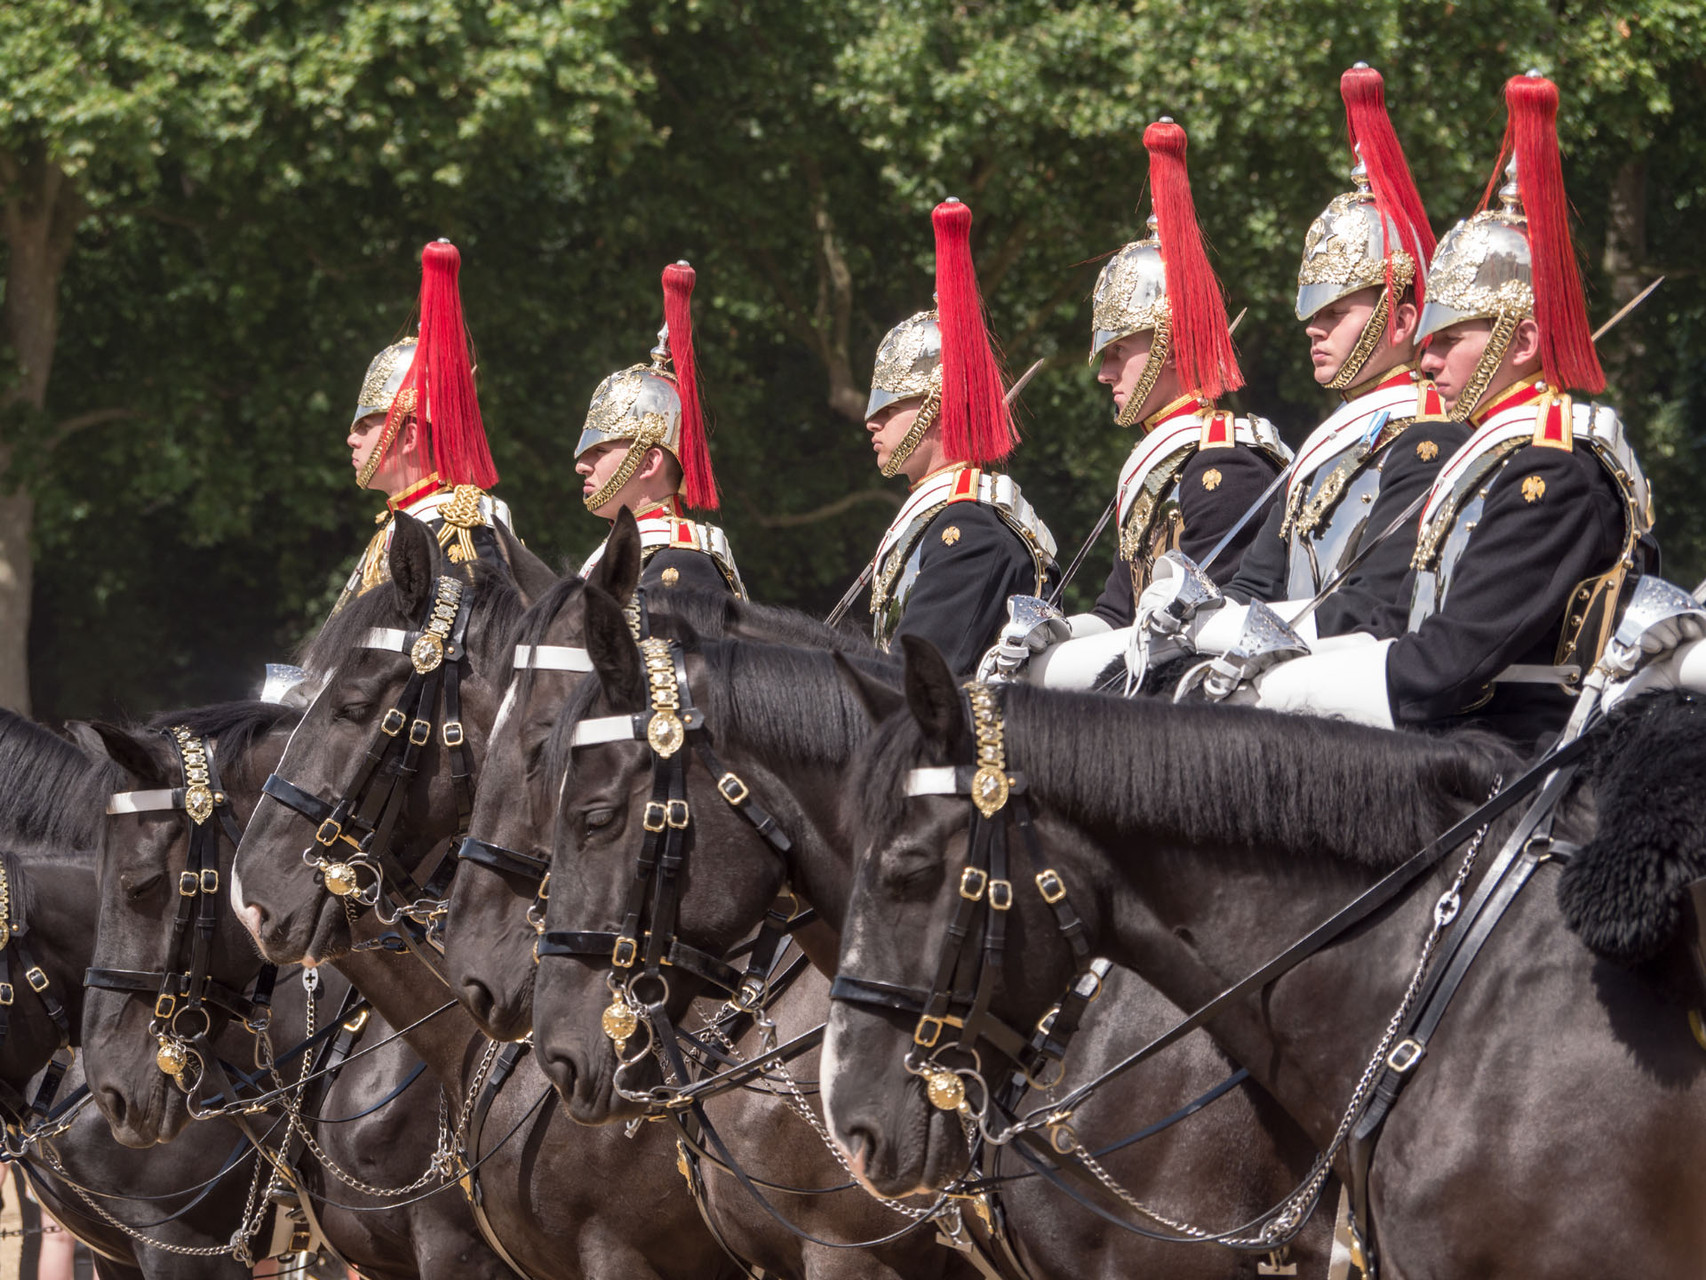 Royal horse guards household cavalry, London